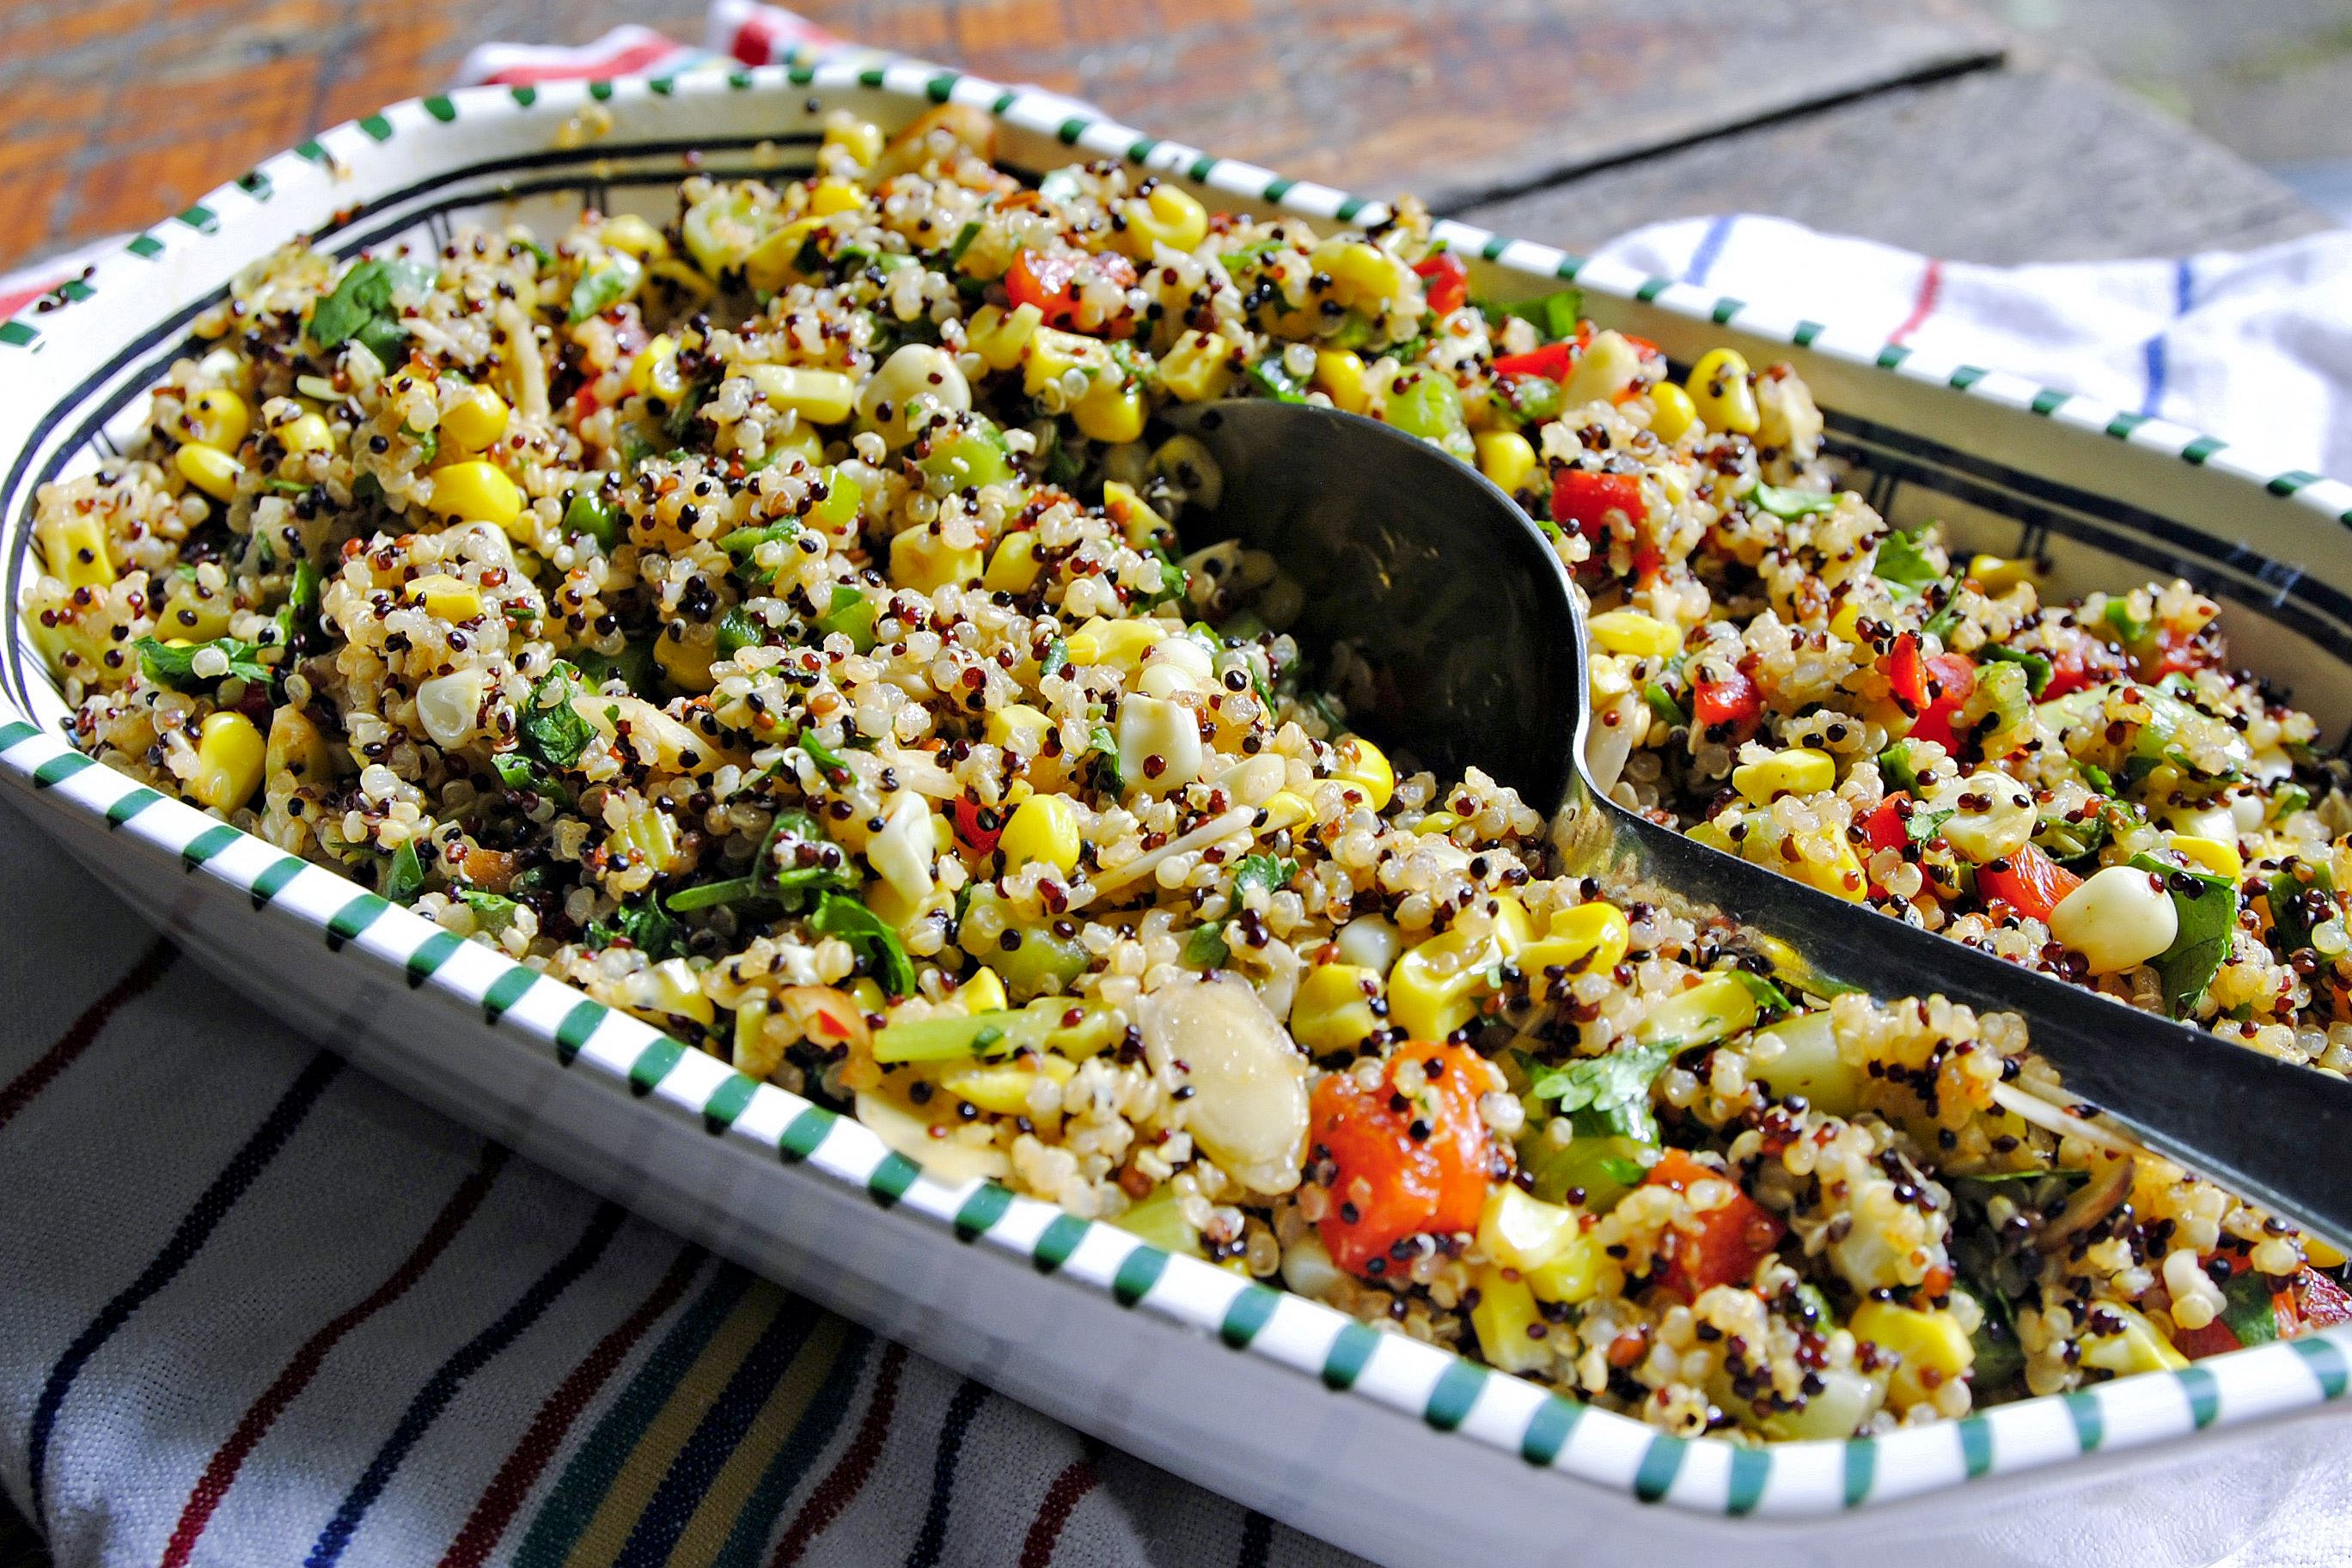 Let's eat: Pan-seared corn and quinoa salad